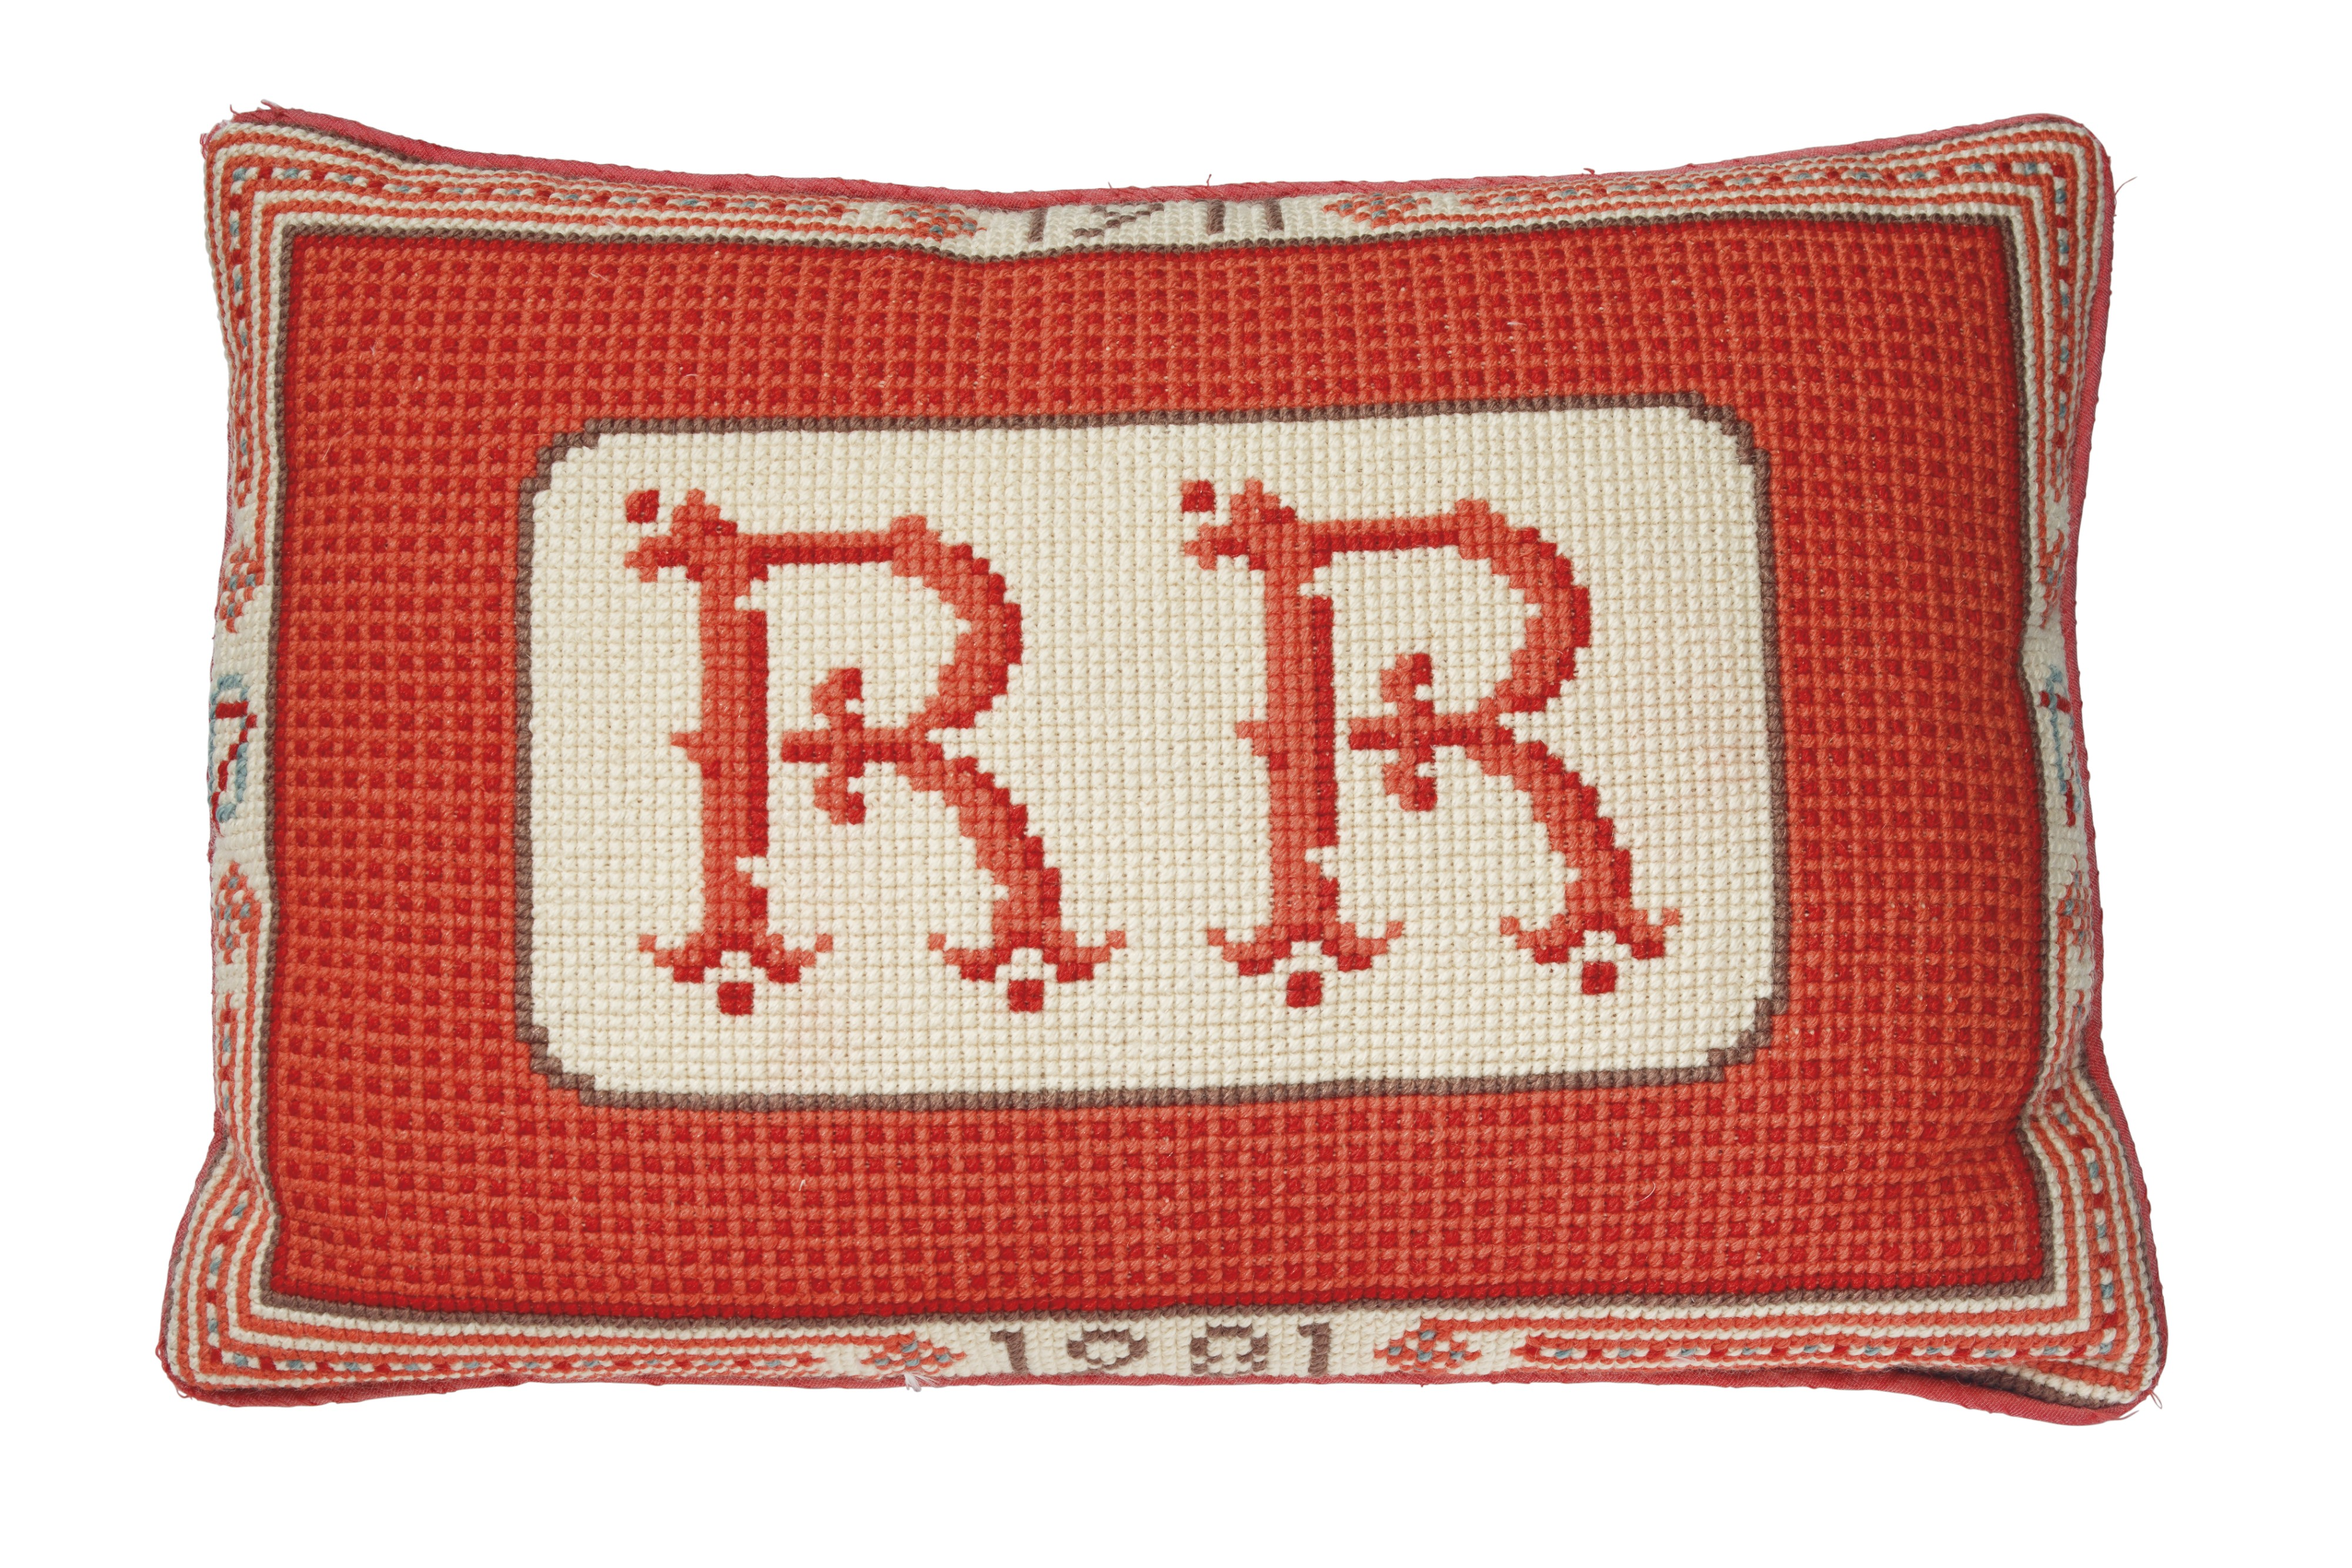 President Reagan's 70th birthday present, a red monogrammed needlepoint cushion. It sold for $25,000.